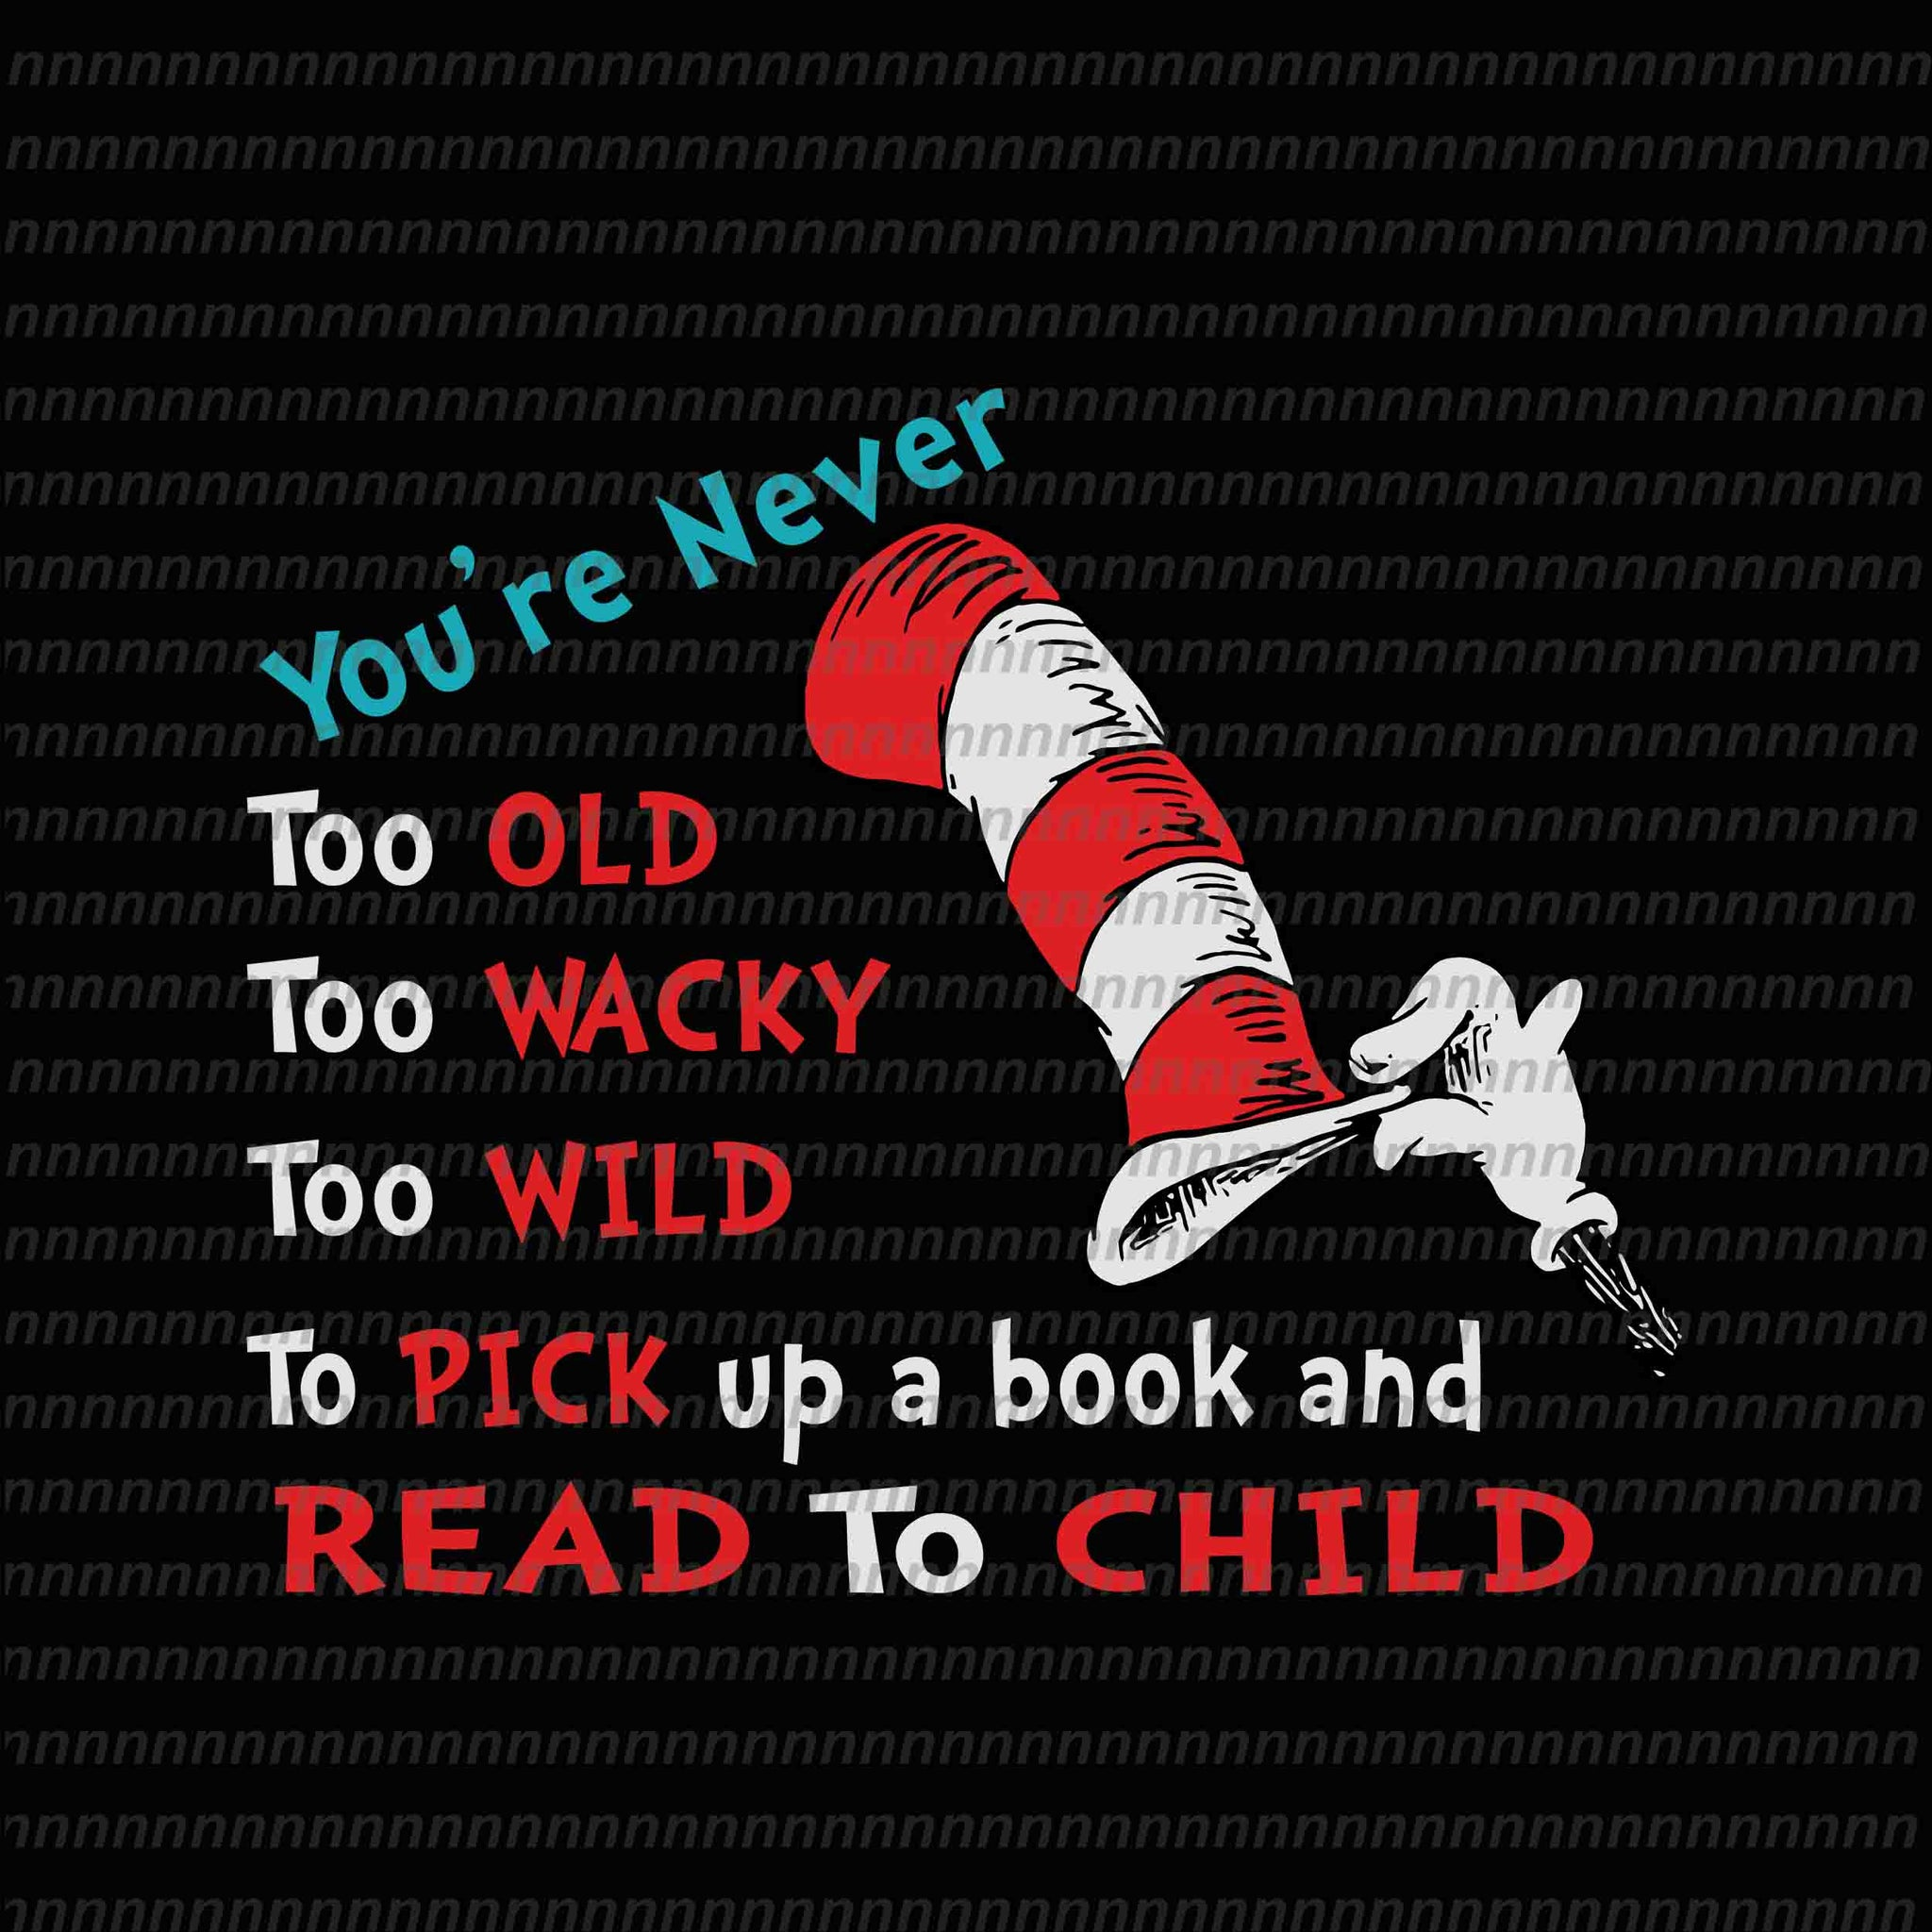 You're never too old to wacky to wild to pick up a book and read to child, dr seuss svg,dr seuss vector, dr seuss quote, dr seuss design, Cat in the hat svg, thing 1 thing 2 thing 3, svg, png, dxf, eps file